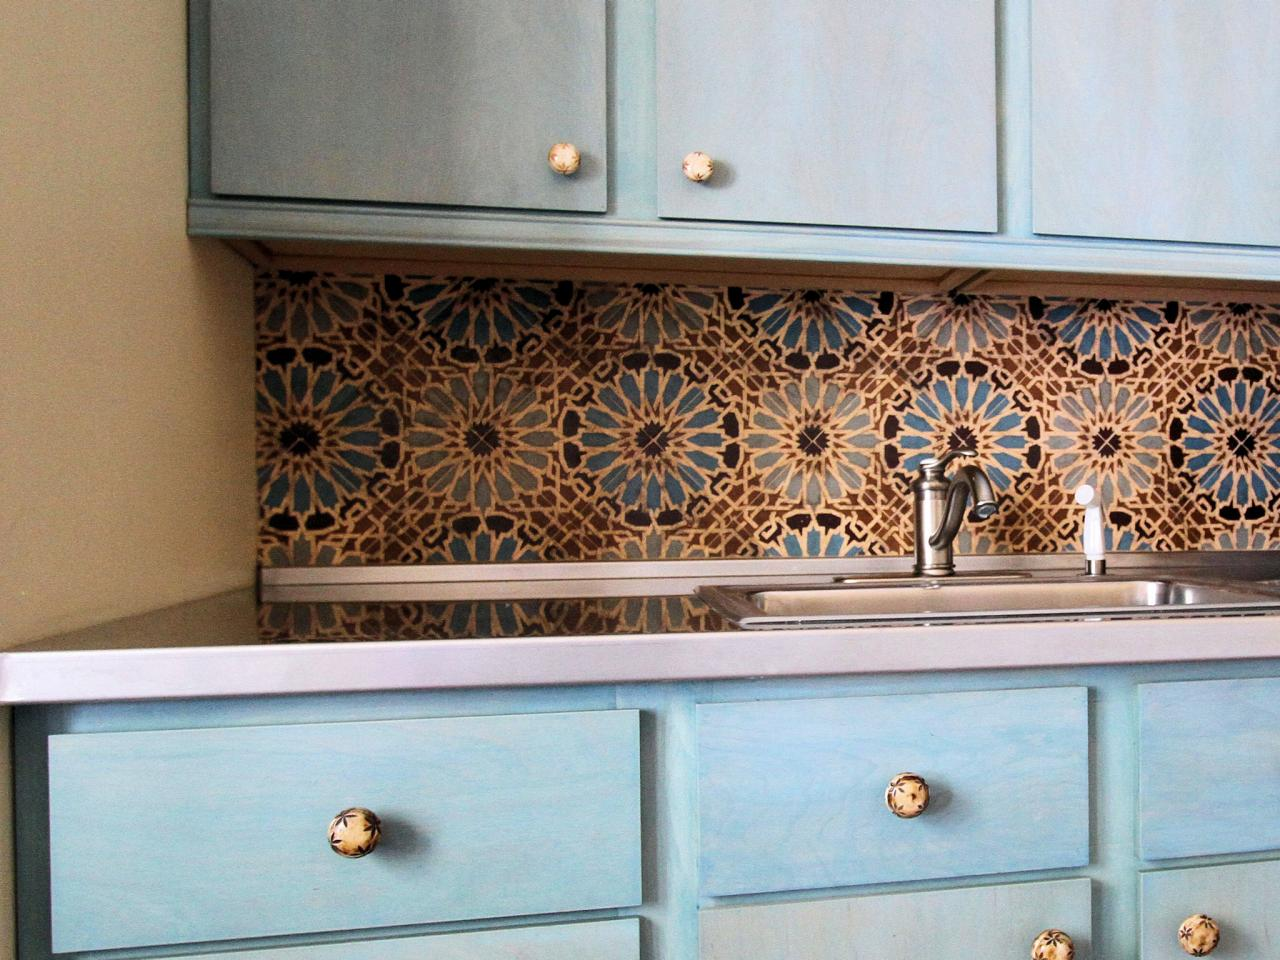 Kitchen tile backsplash ideas pictures tips from hgtv hgtv Kitchen backsplash ideas for small kitchens